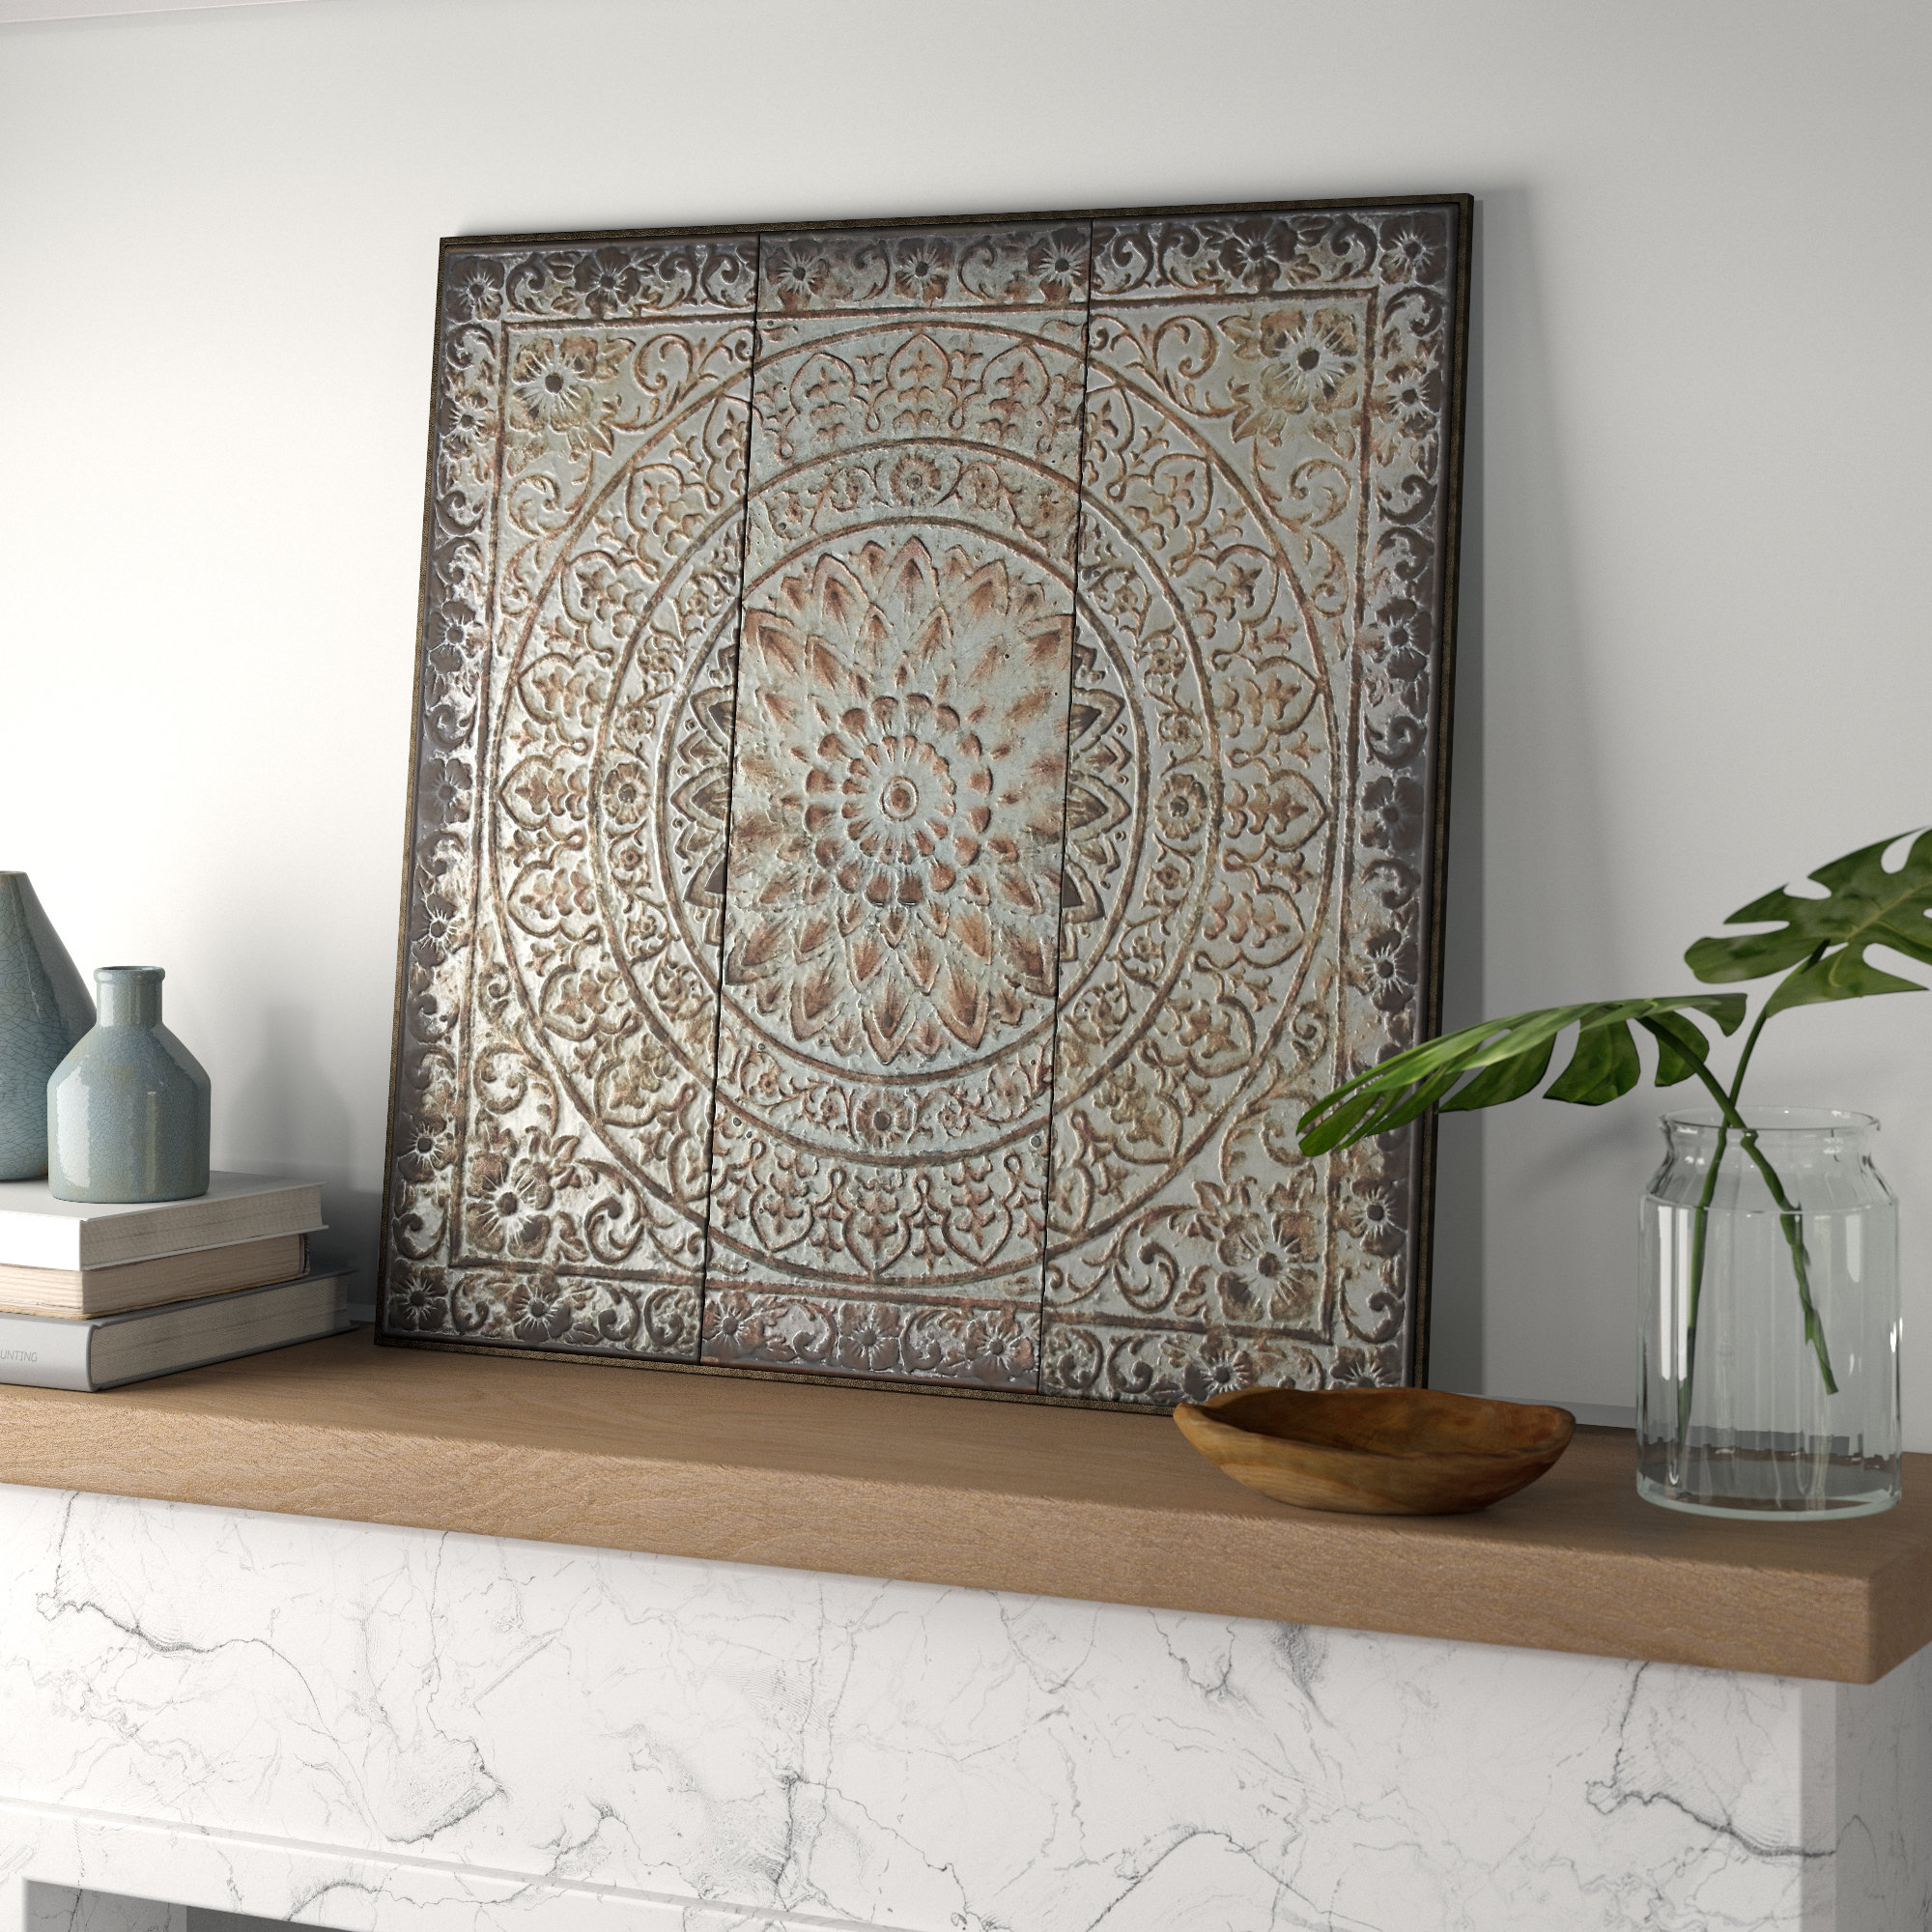 Metal Panel Wall Decor | Wayfair Pertaining To Abstract Bar And Panel Wall Decor (Image 17 of 30)